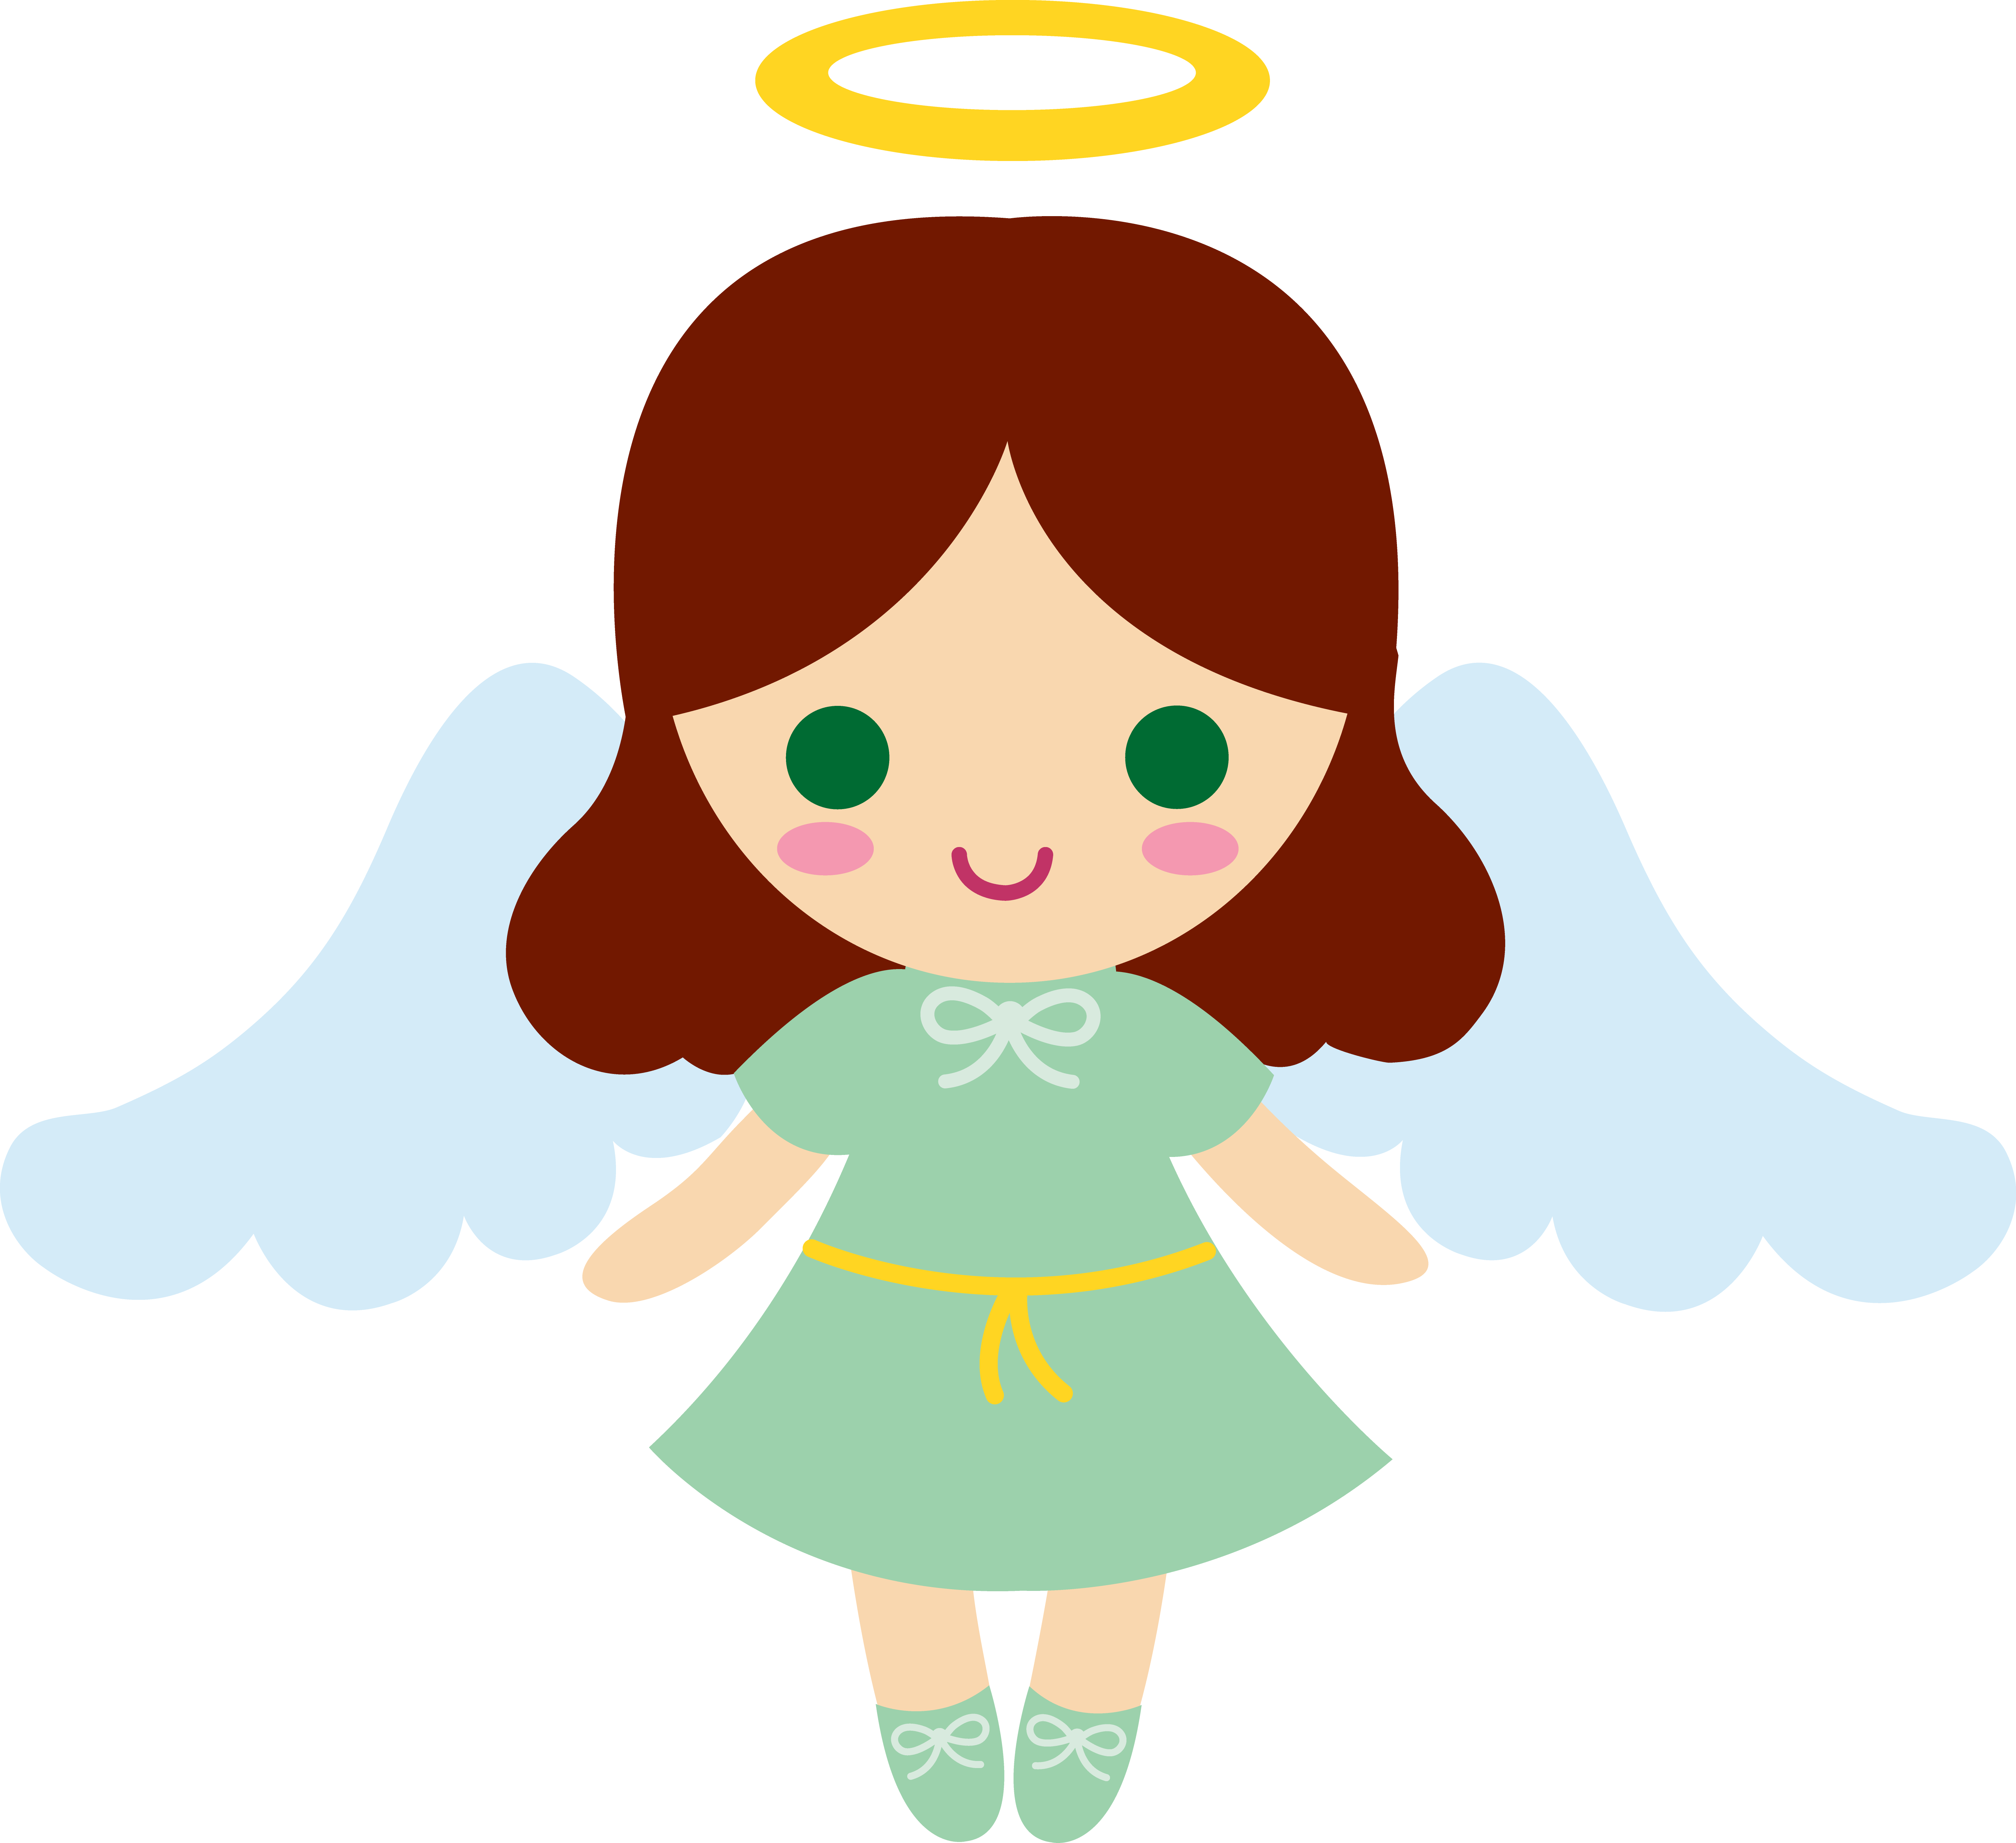 Angels For Kids Drawing at GetDrawings.com | Free for personal use ...